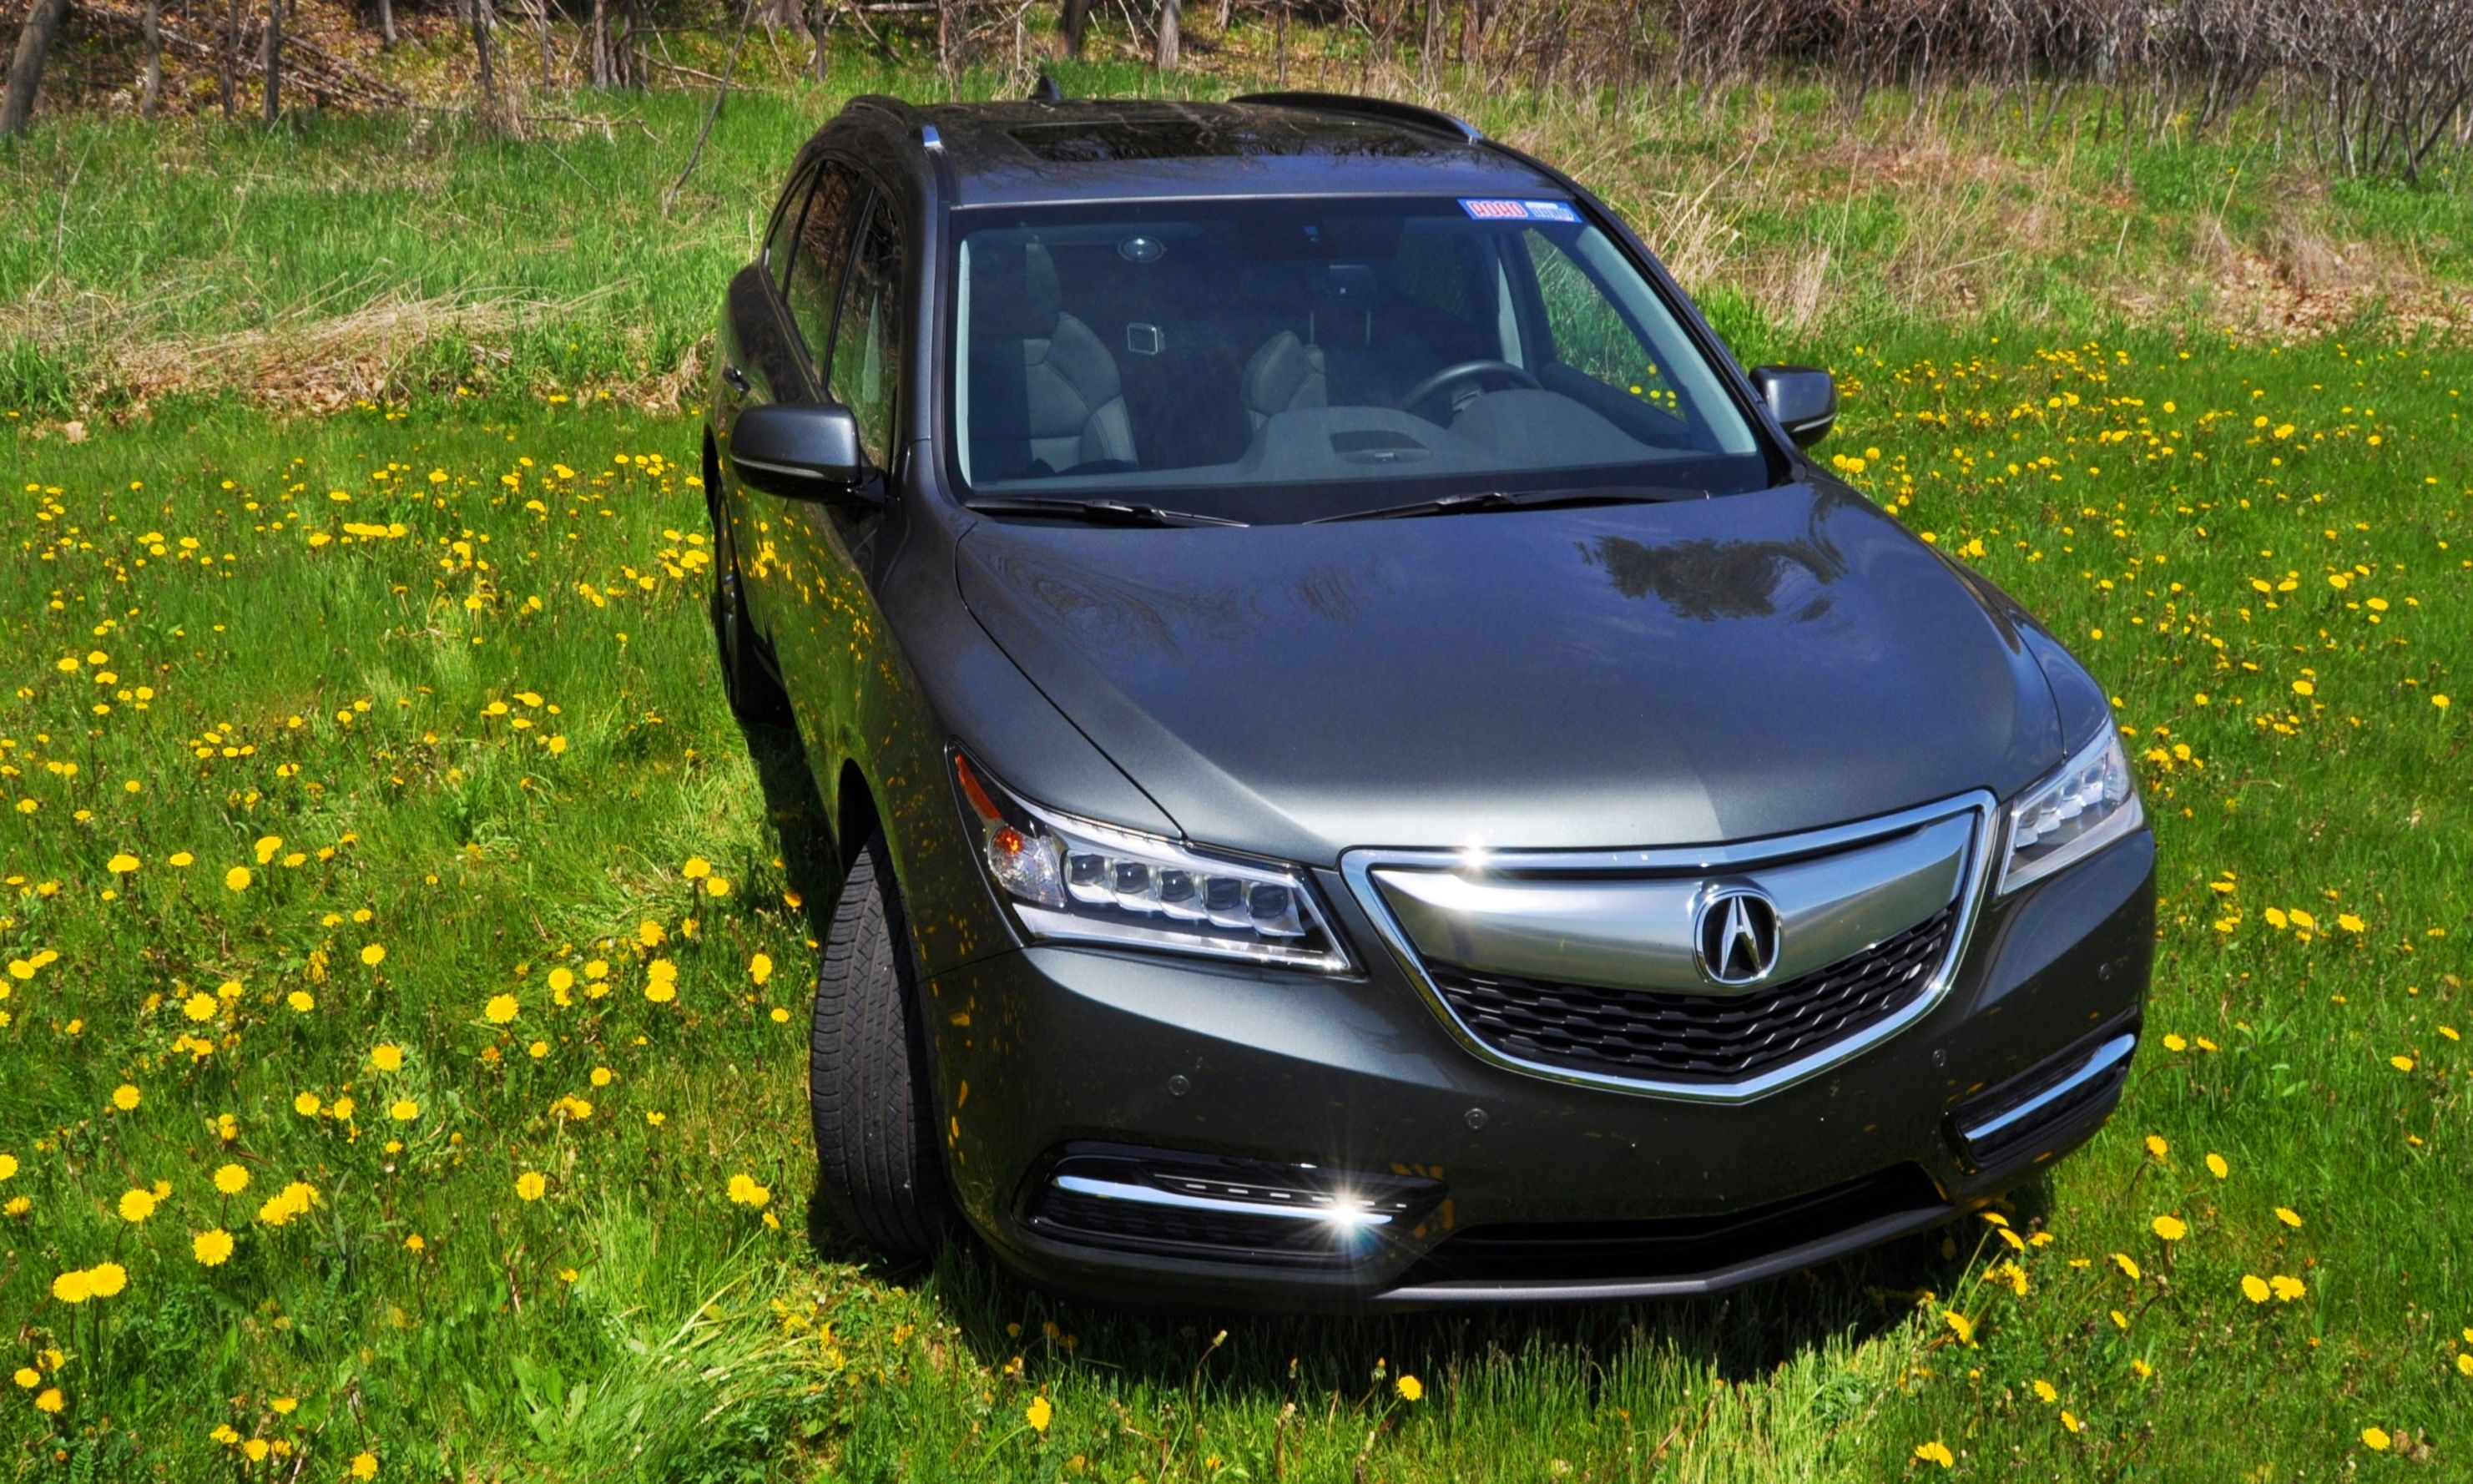 Road Test Review Acura MDX SHAWD Is Premium And Posh - Acura mdx review 2014